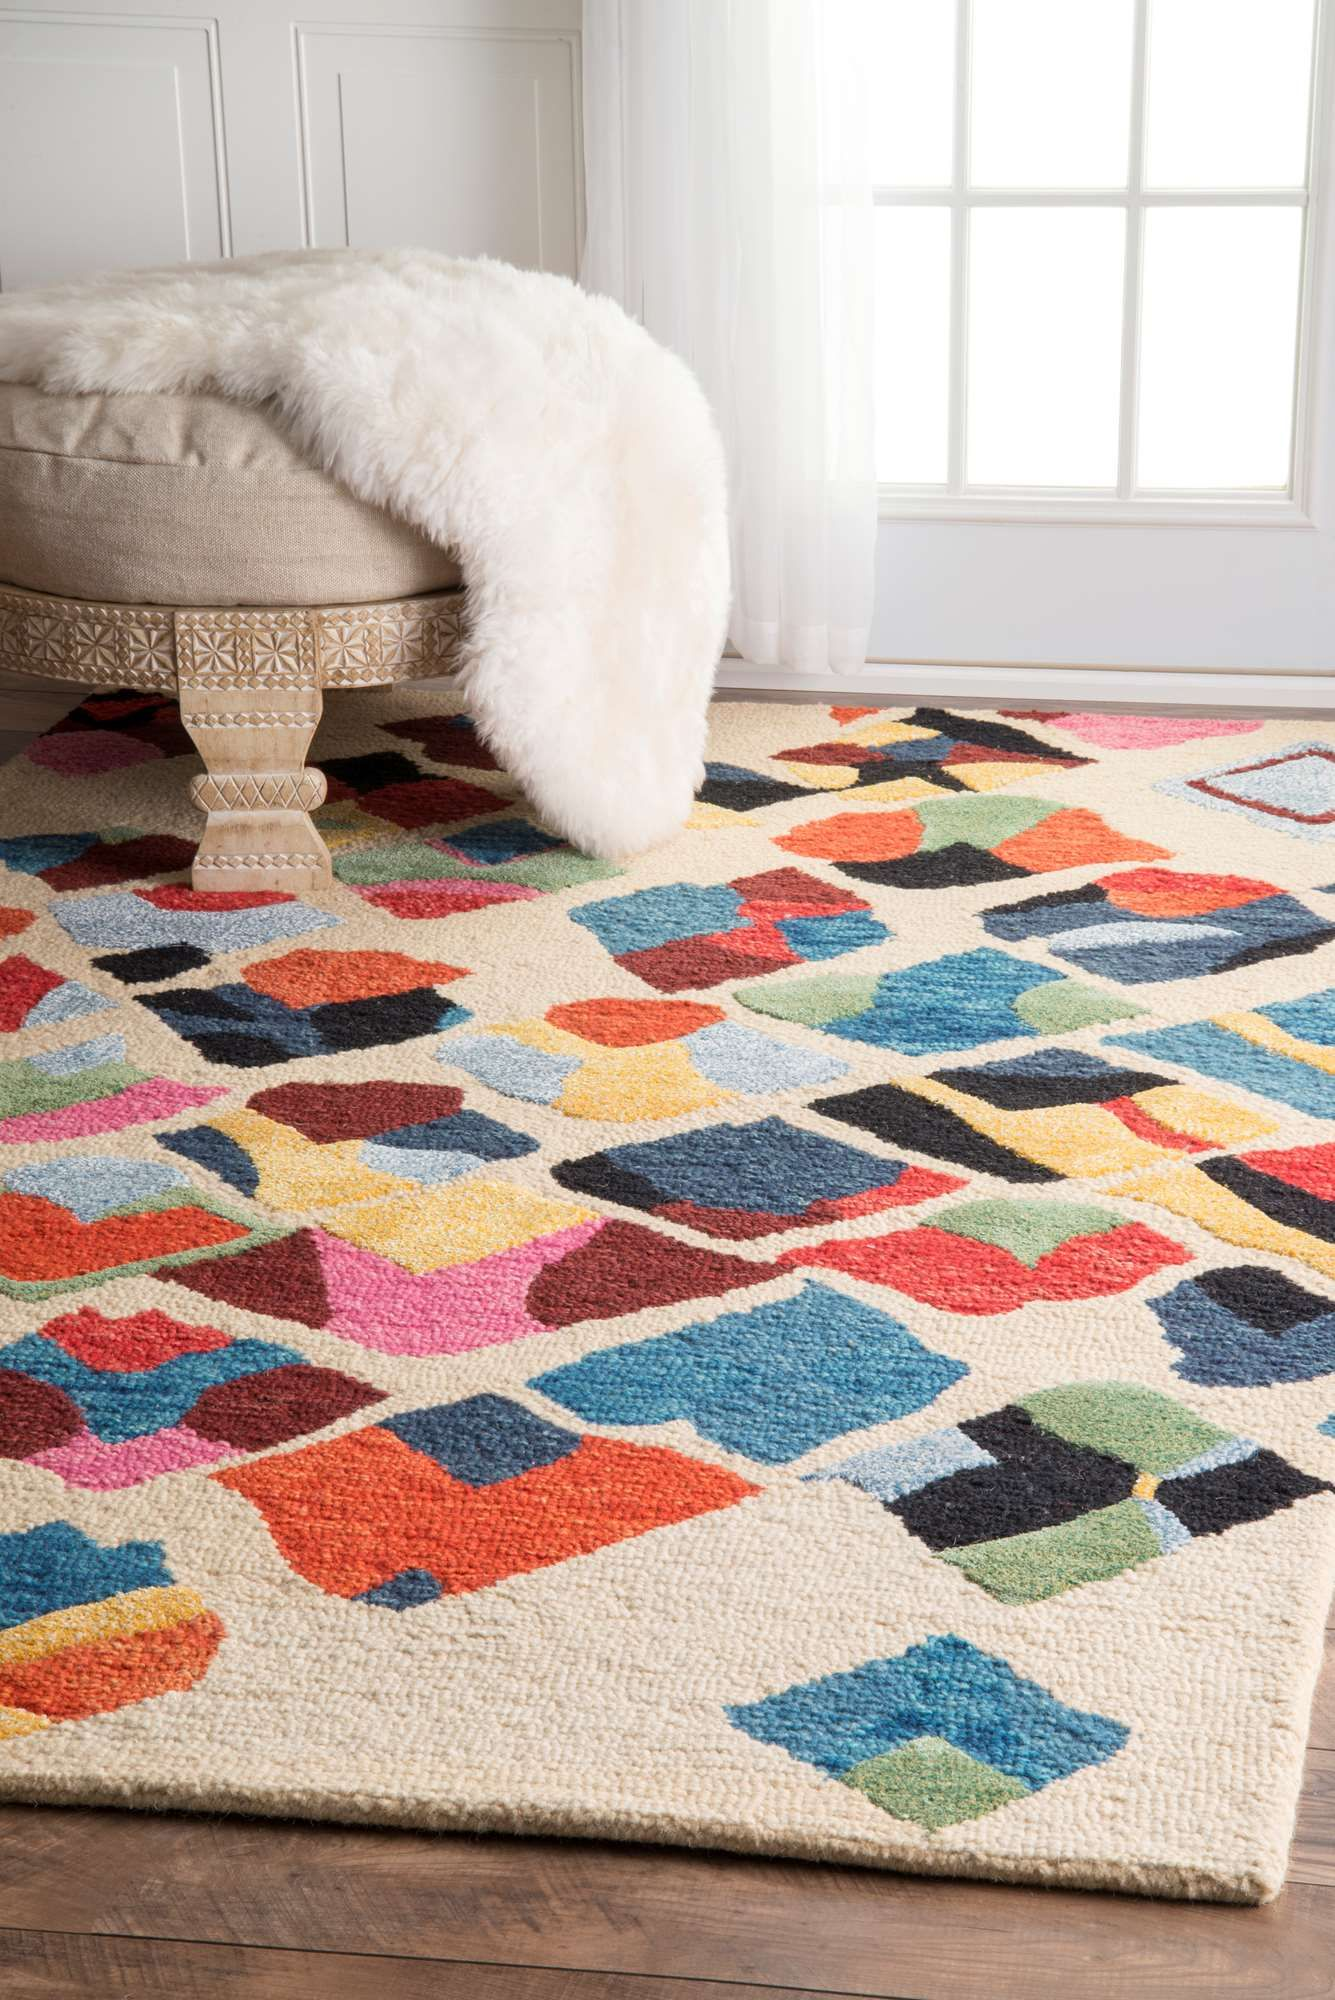 Rugs Usa Area Rugs In Many Styles Including Contemporary Braided Outdoor And Flokati Shag Rugs Buy Rugs At America S Home Dec Wool Area Rugs Rugs Area Rugs